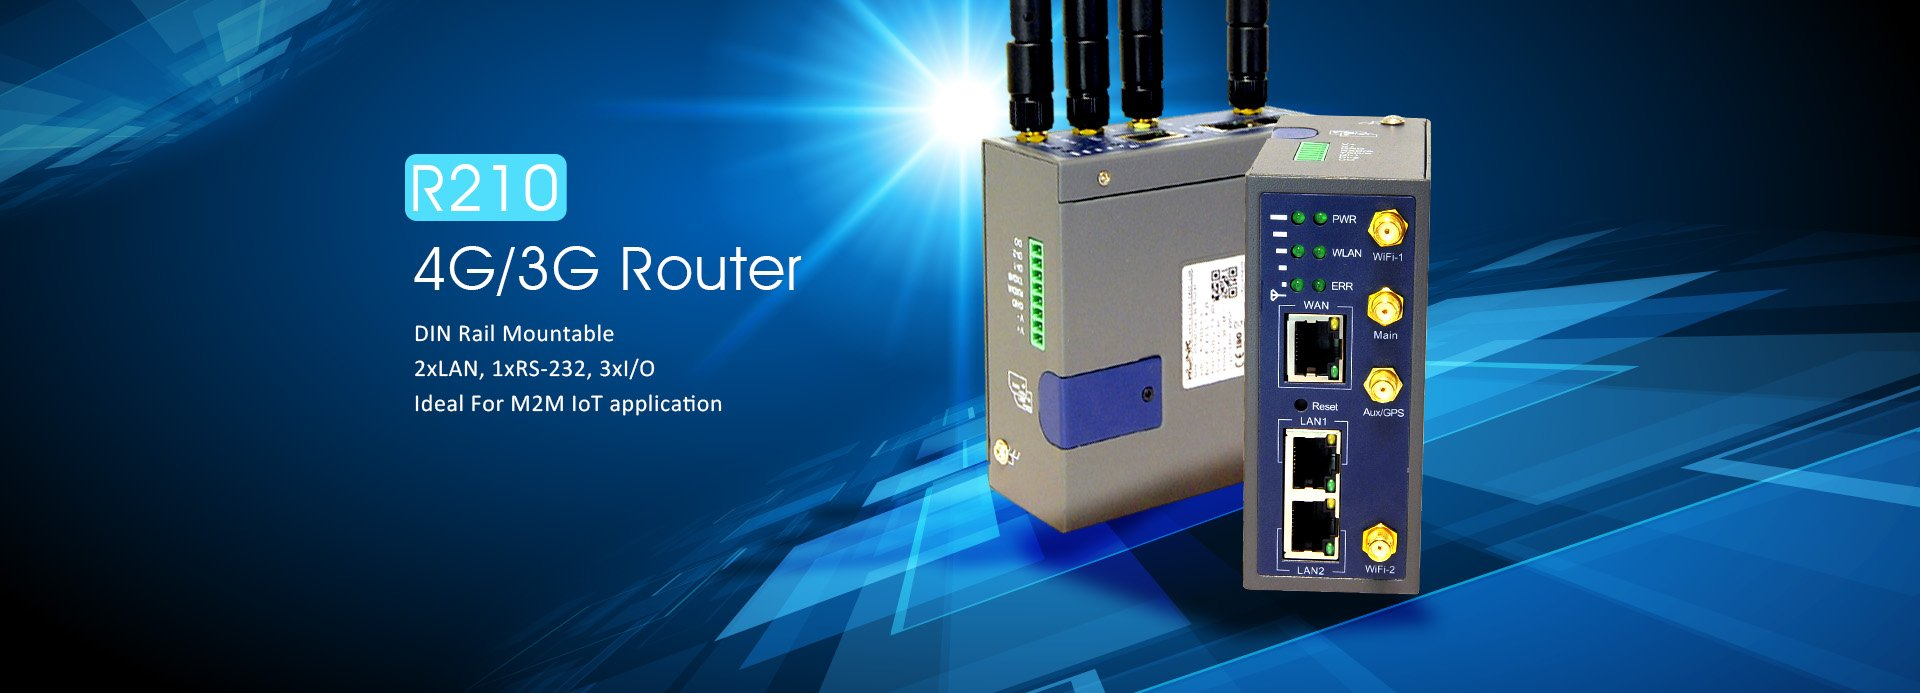 R210 4G Router